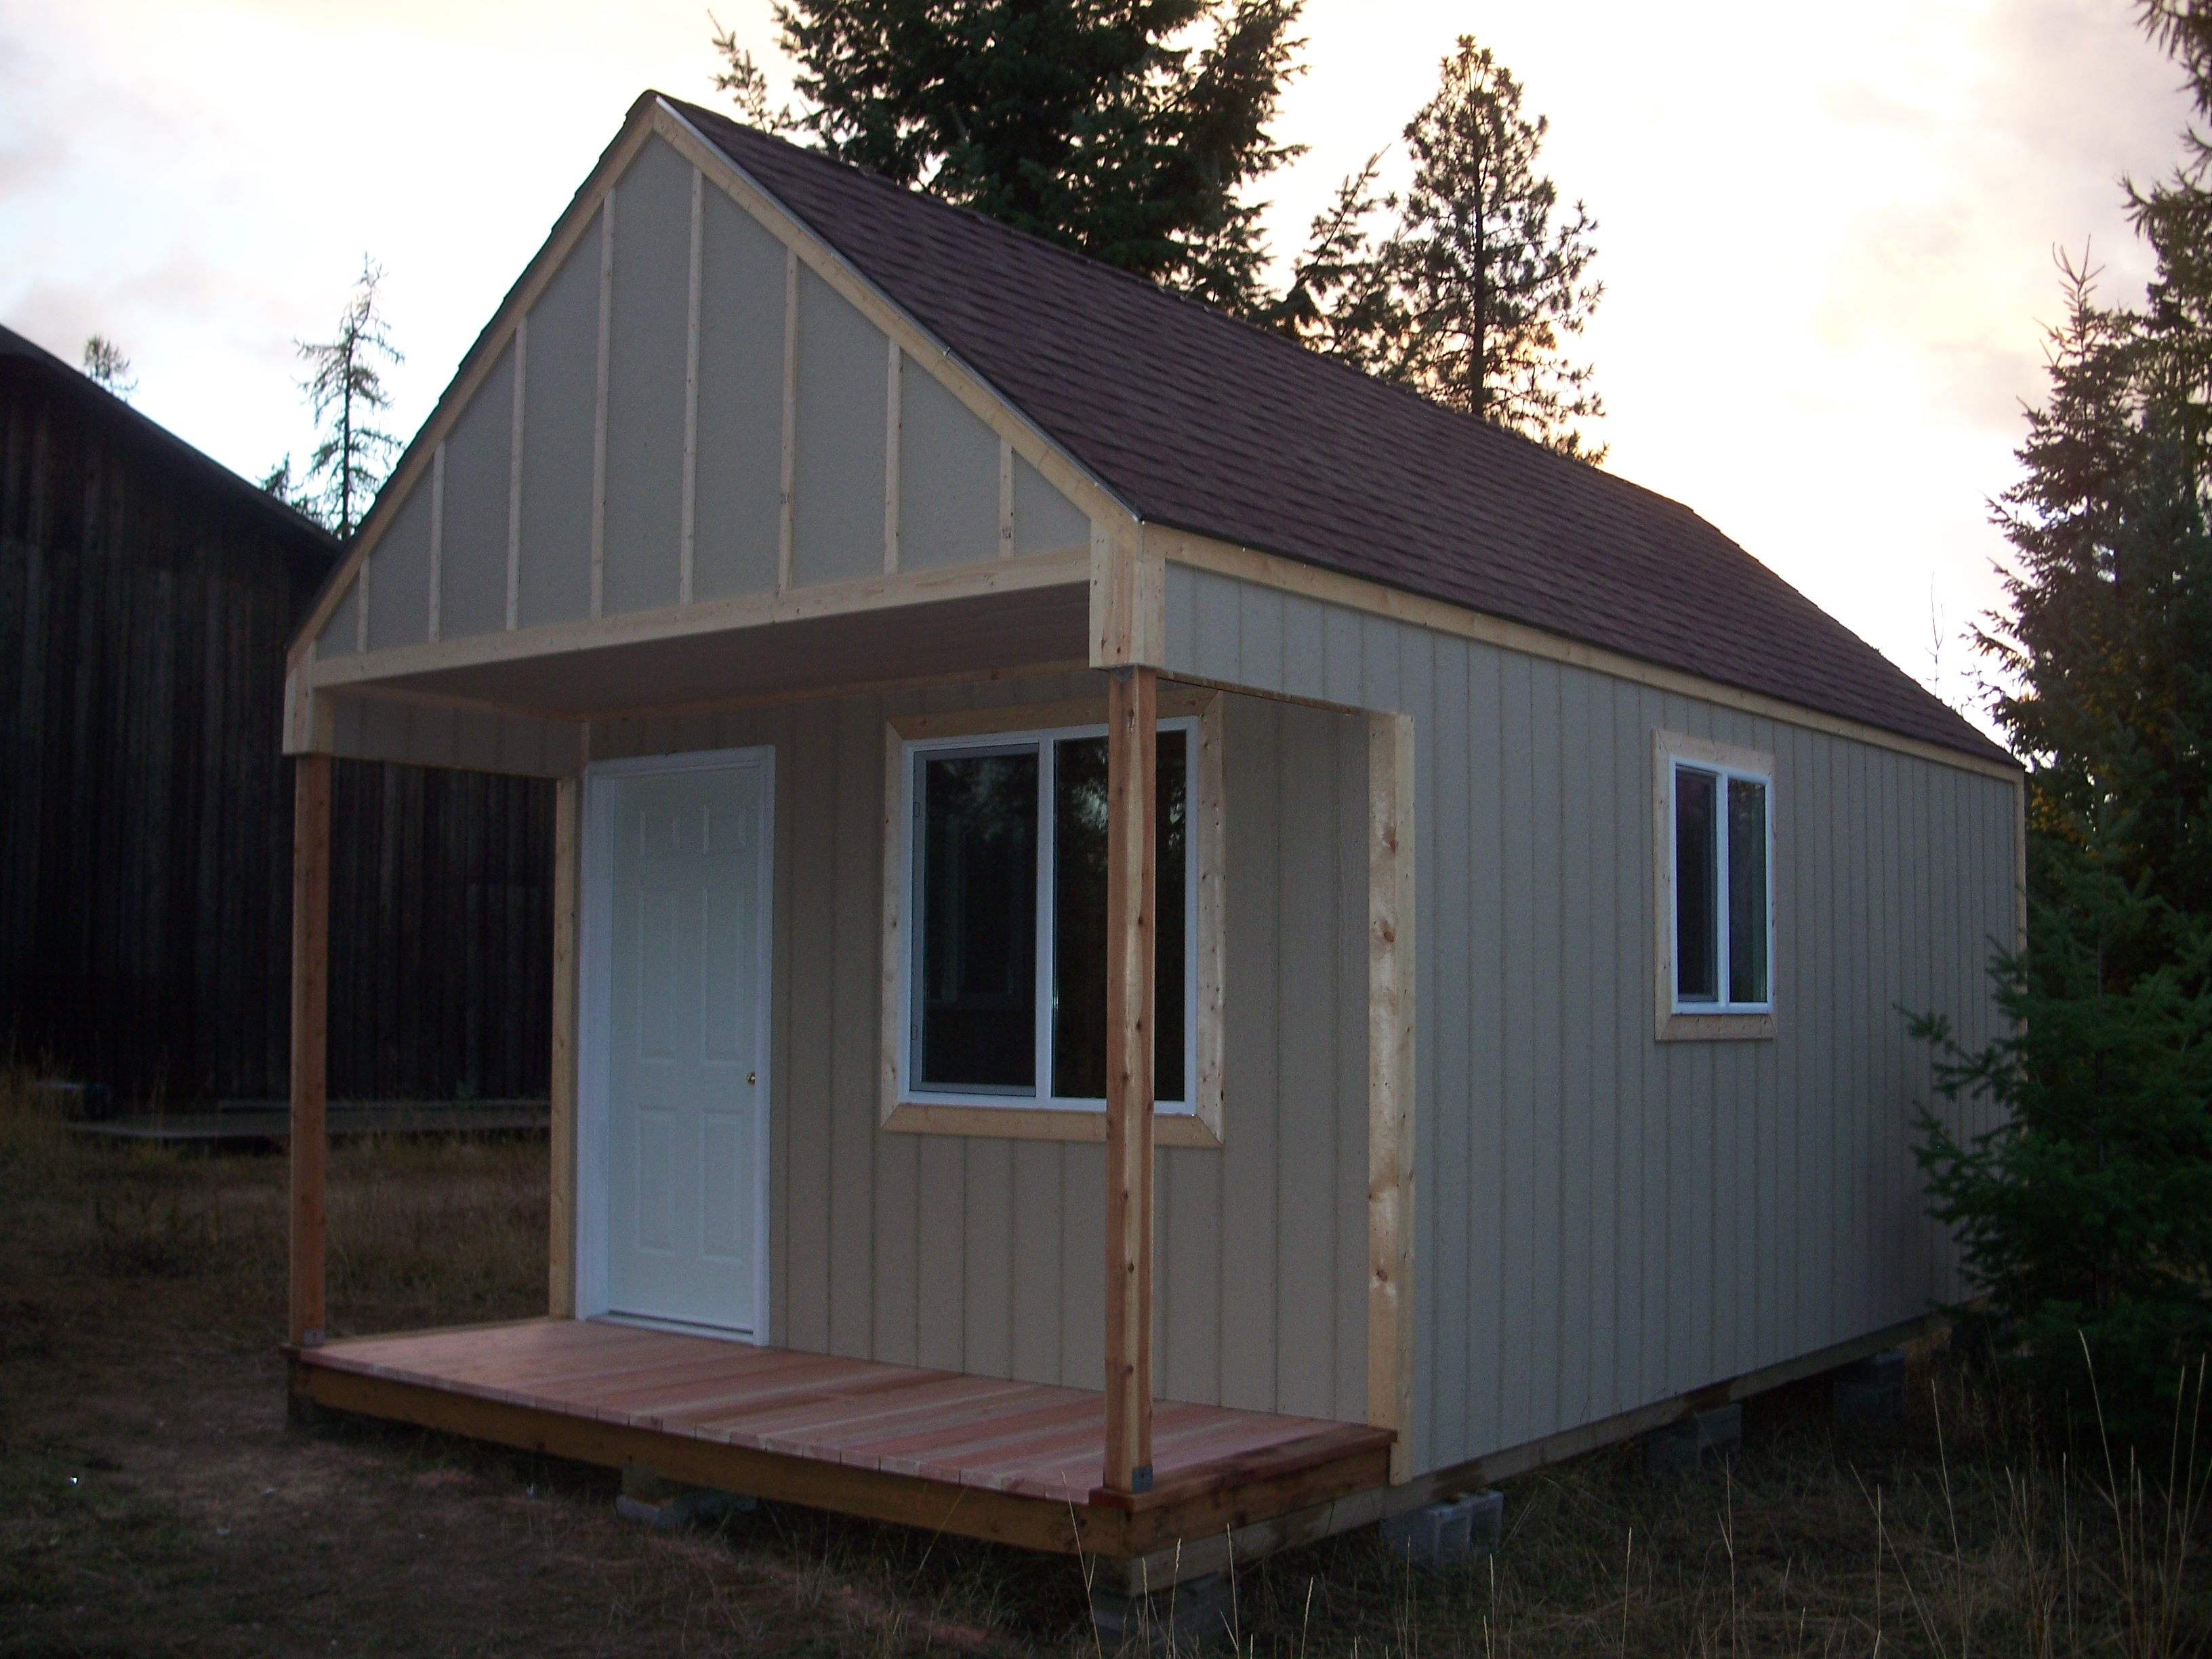 Lowe 39 s cabin kits diy small cabin kits diy cabins kits for Lowes cabins kits